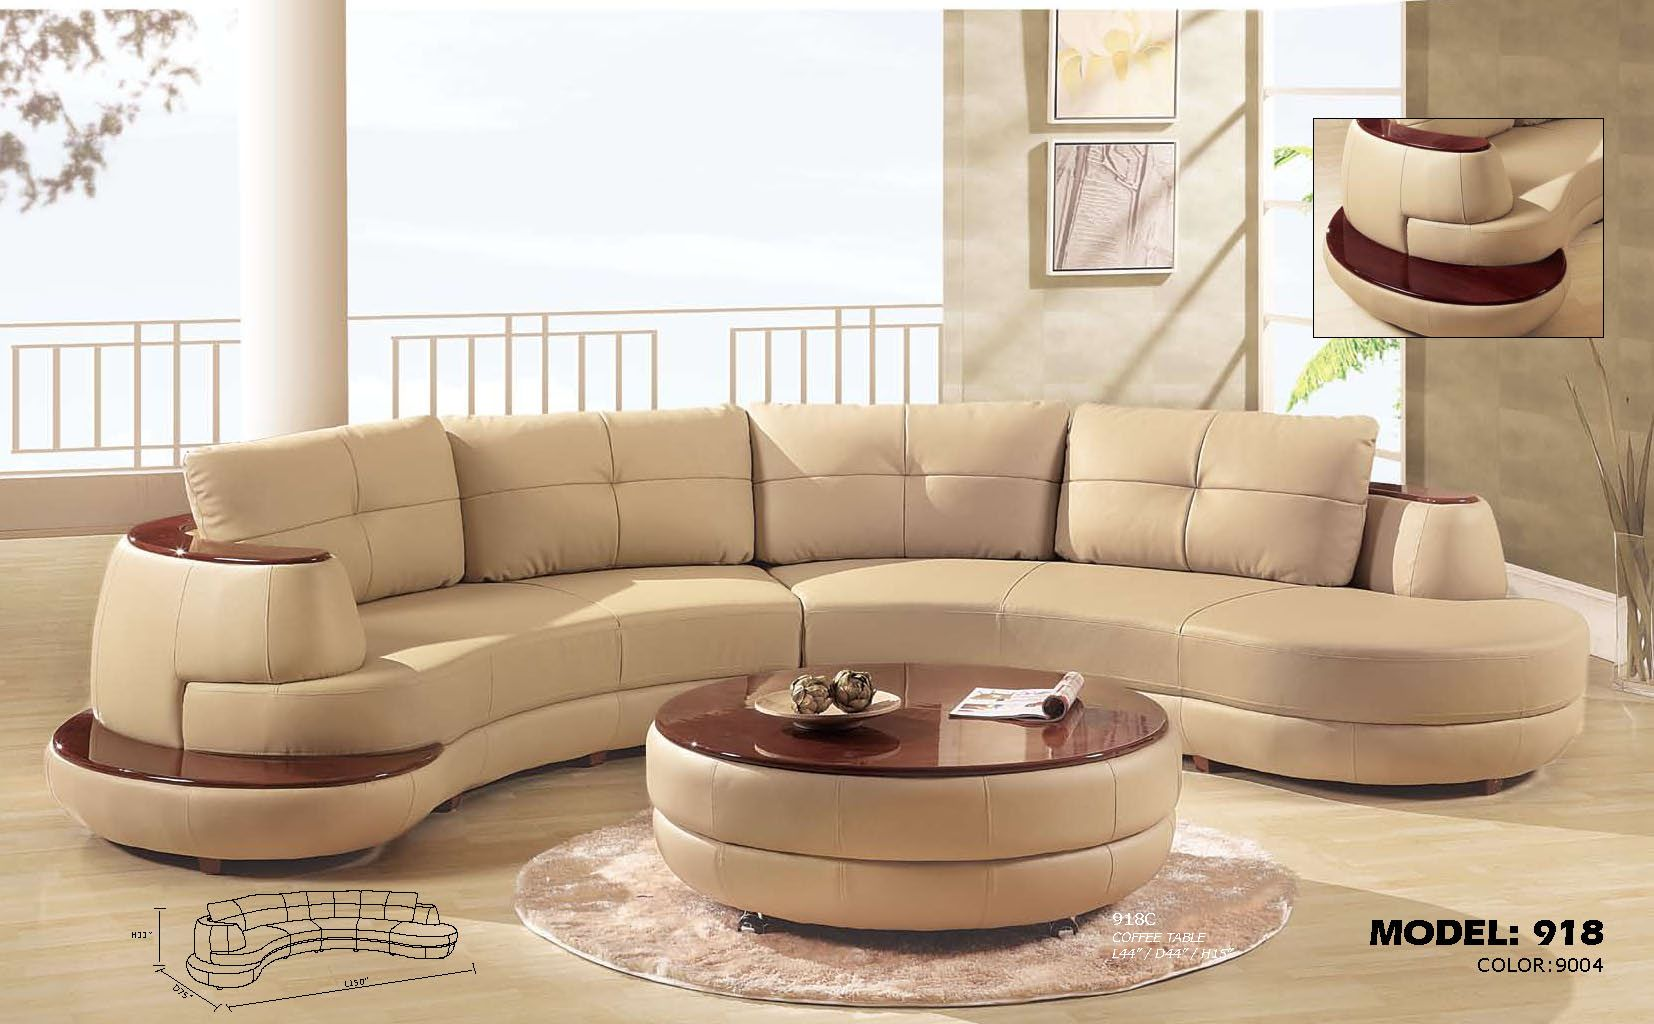 Elegant Living Room Design With Simple Beige Curved Sectional Sofa